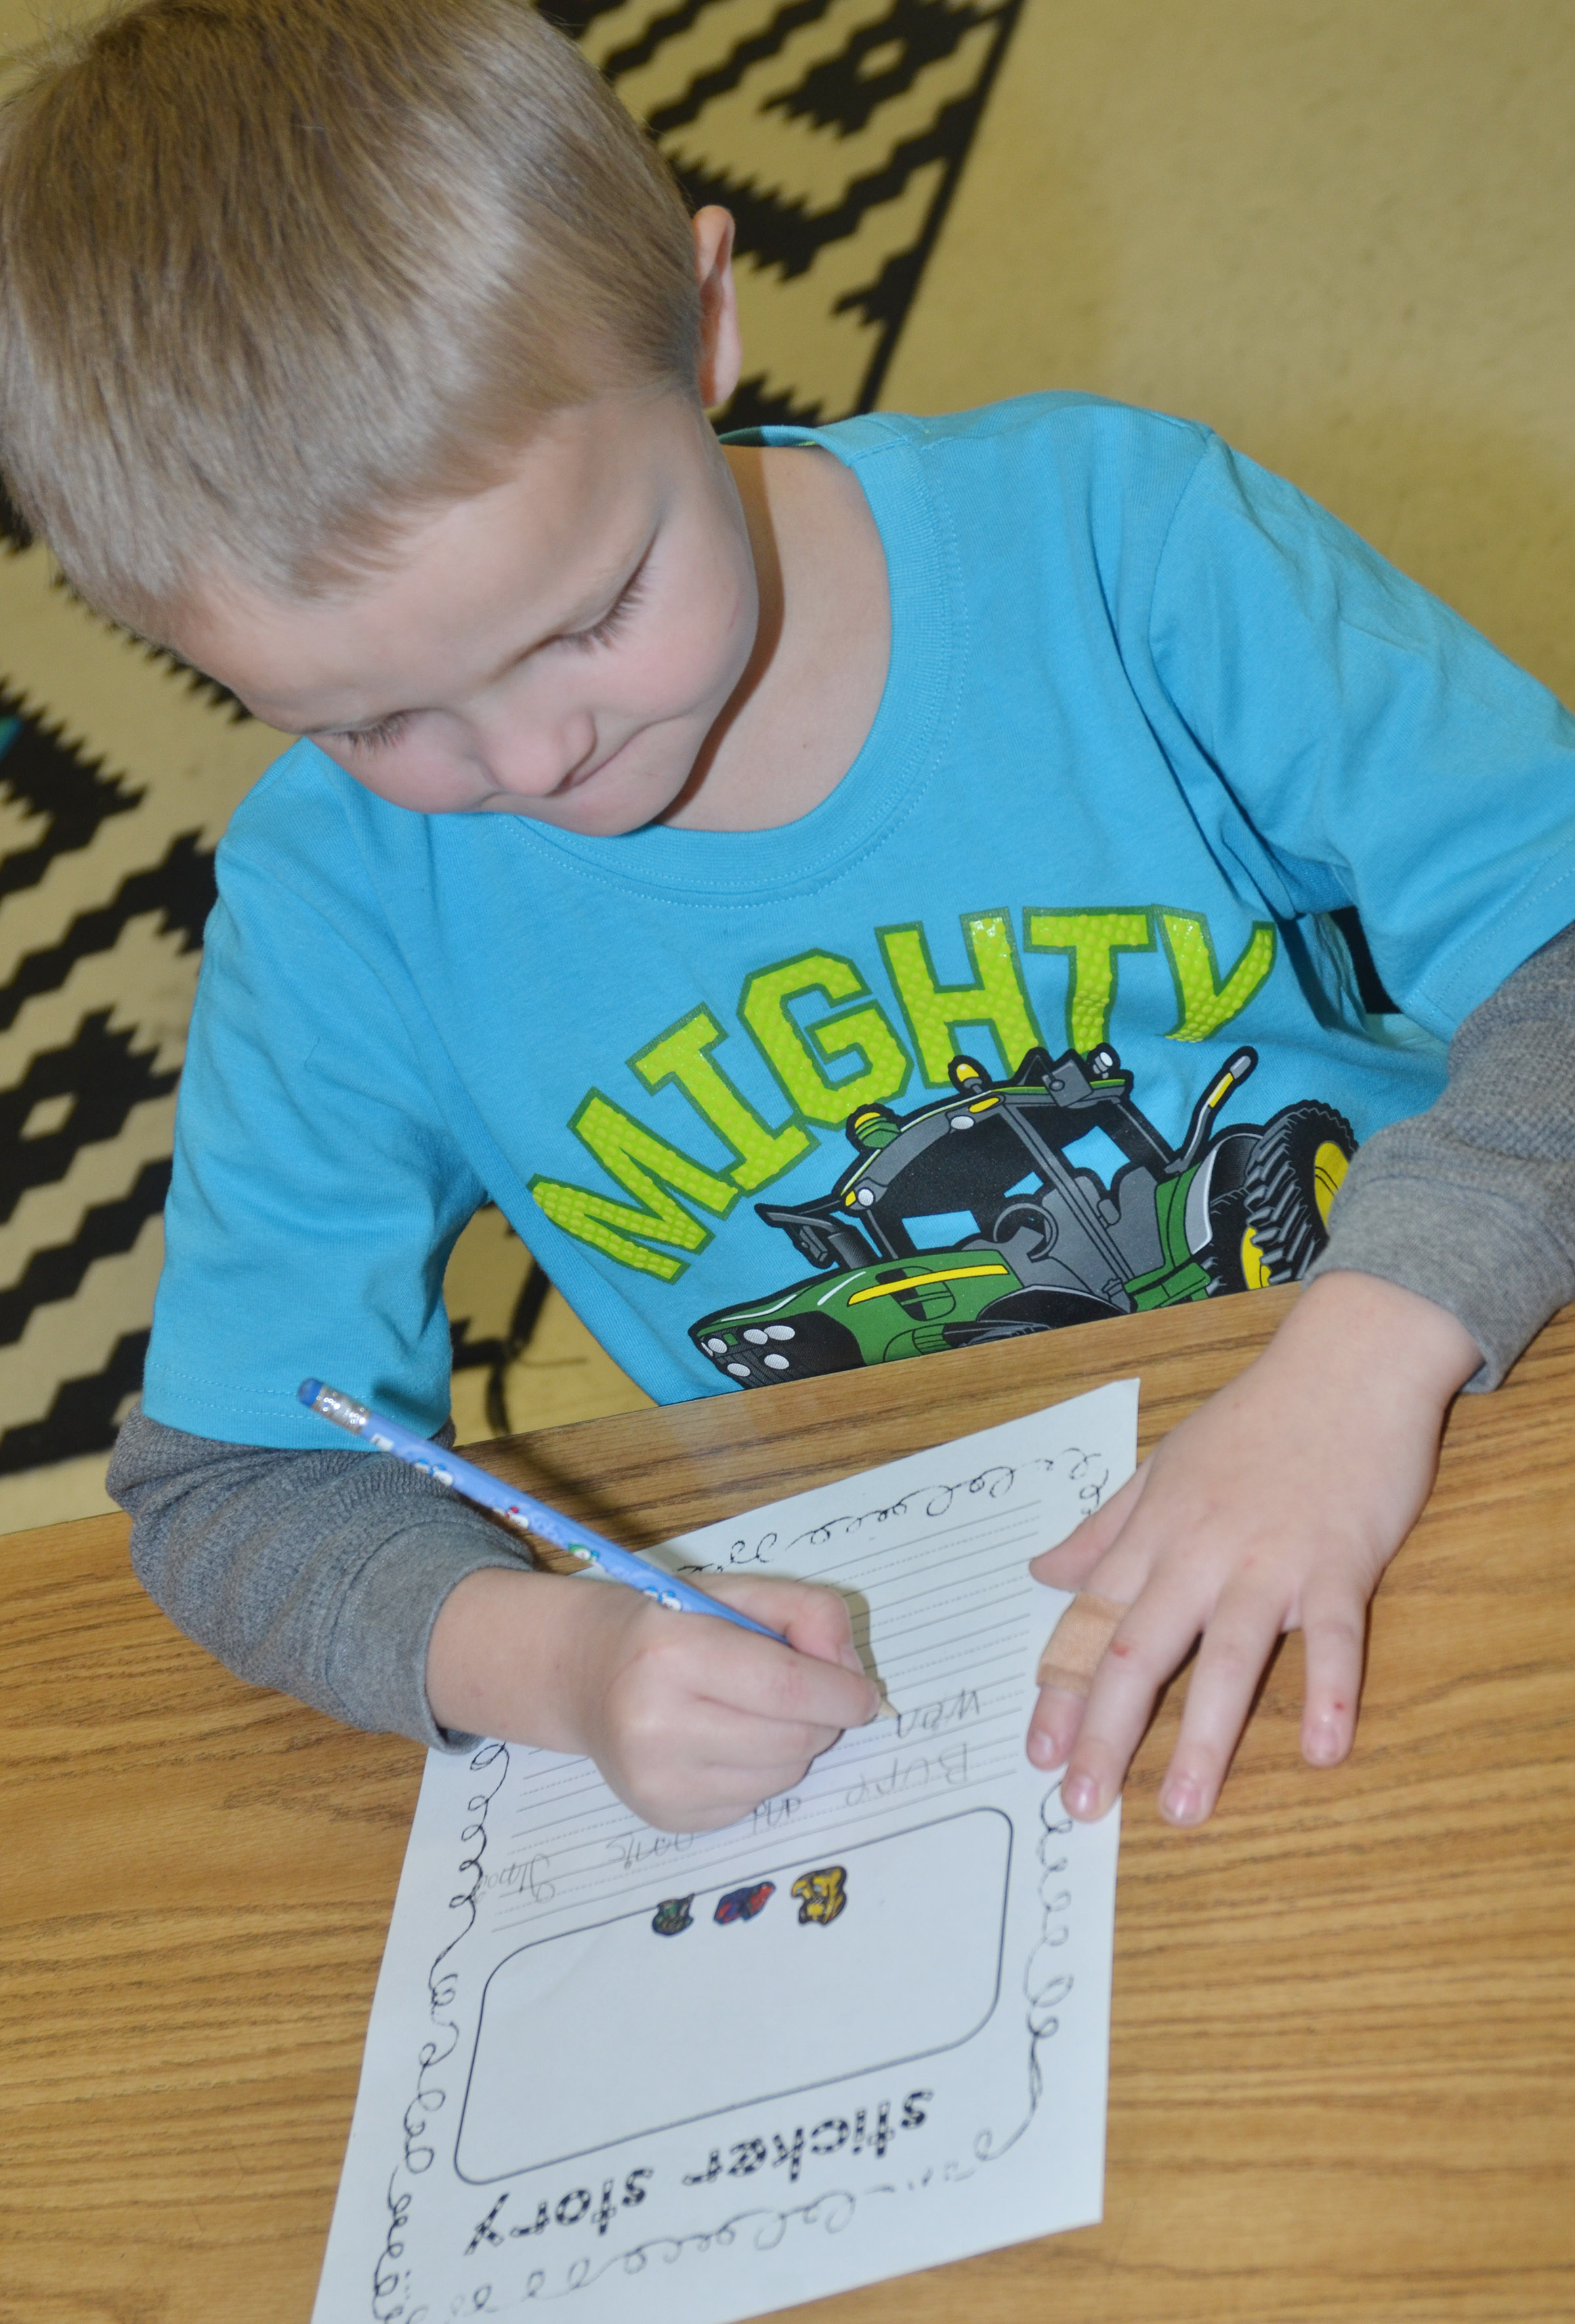 CES first-grader Tristian Harris writes about the story he created by using stickers.